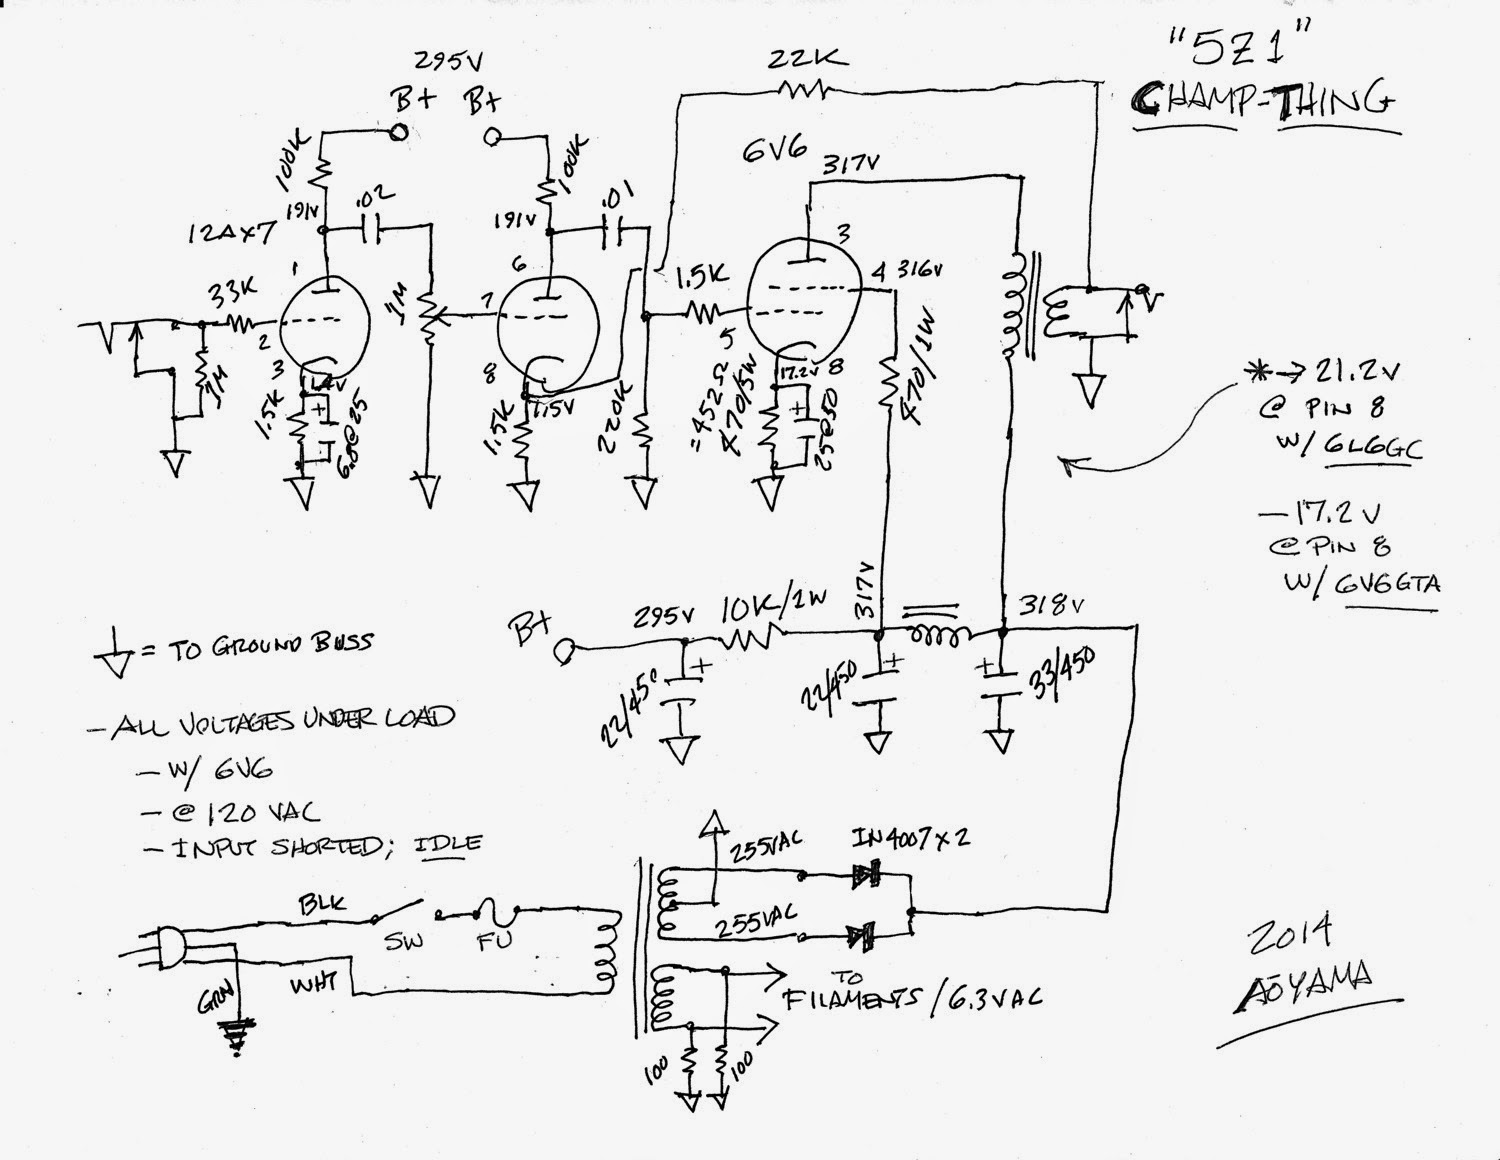 Exelent peavey rockmaster schematic adornment electrical diagram